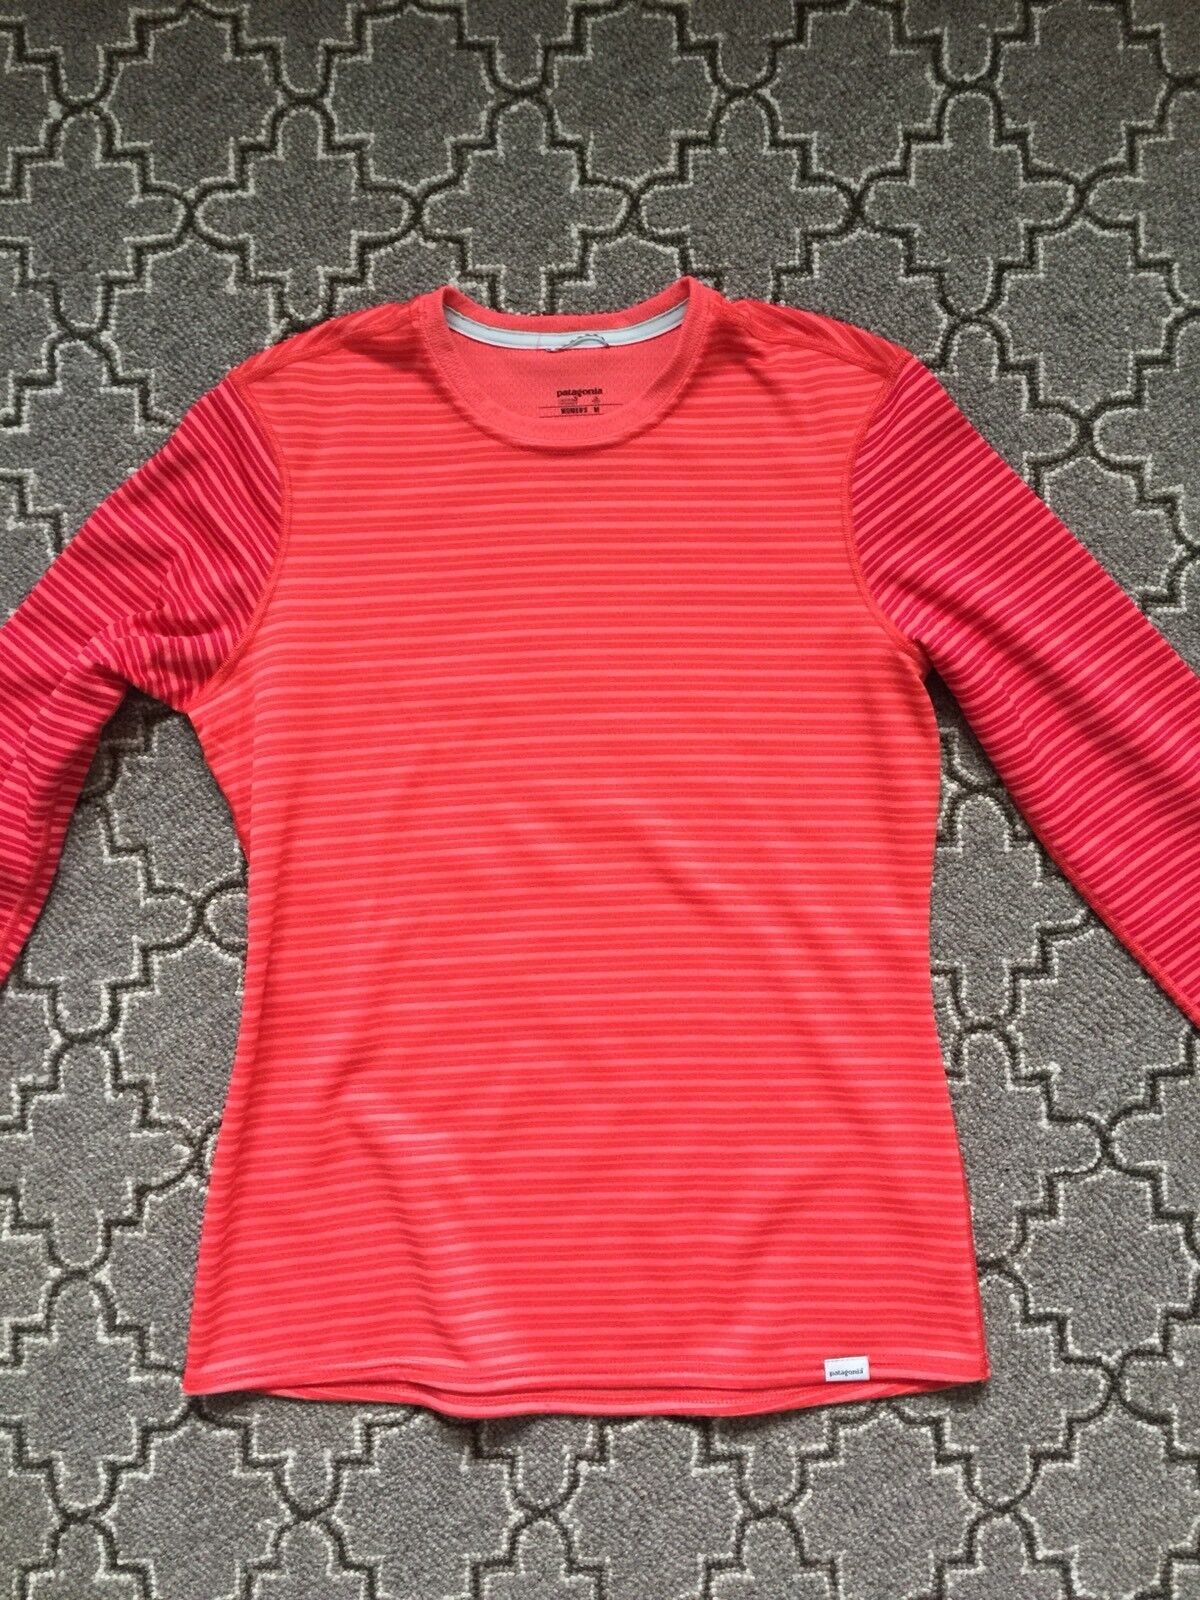 Womens Striped Patagonia Base Layer Size  M  best quality